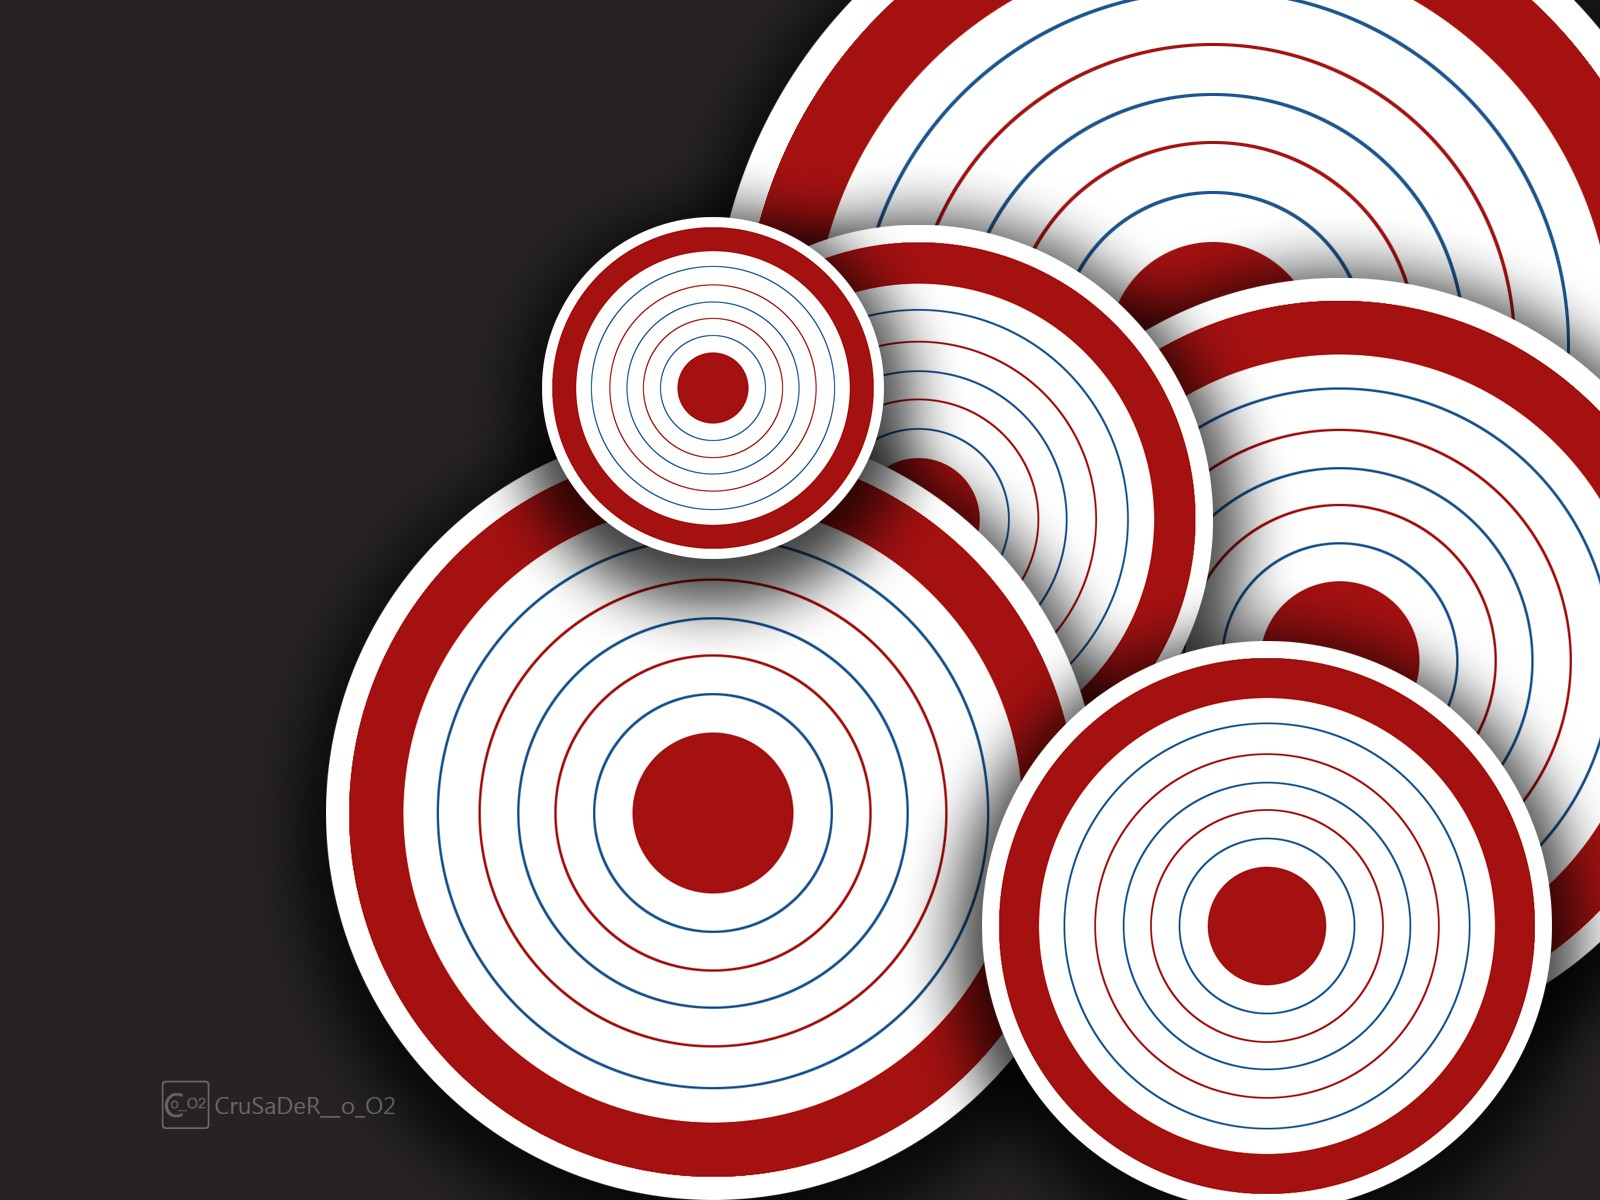 Abstract circles target wallpaper 1600x1200 199518 WallpaperUP 1600x1200